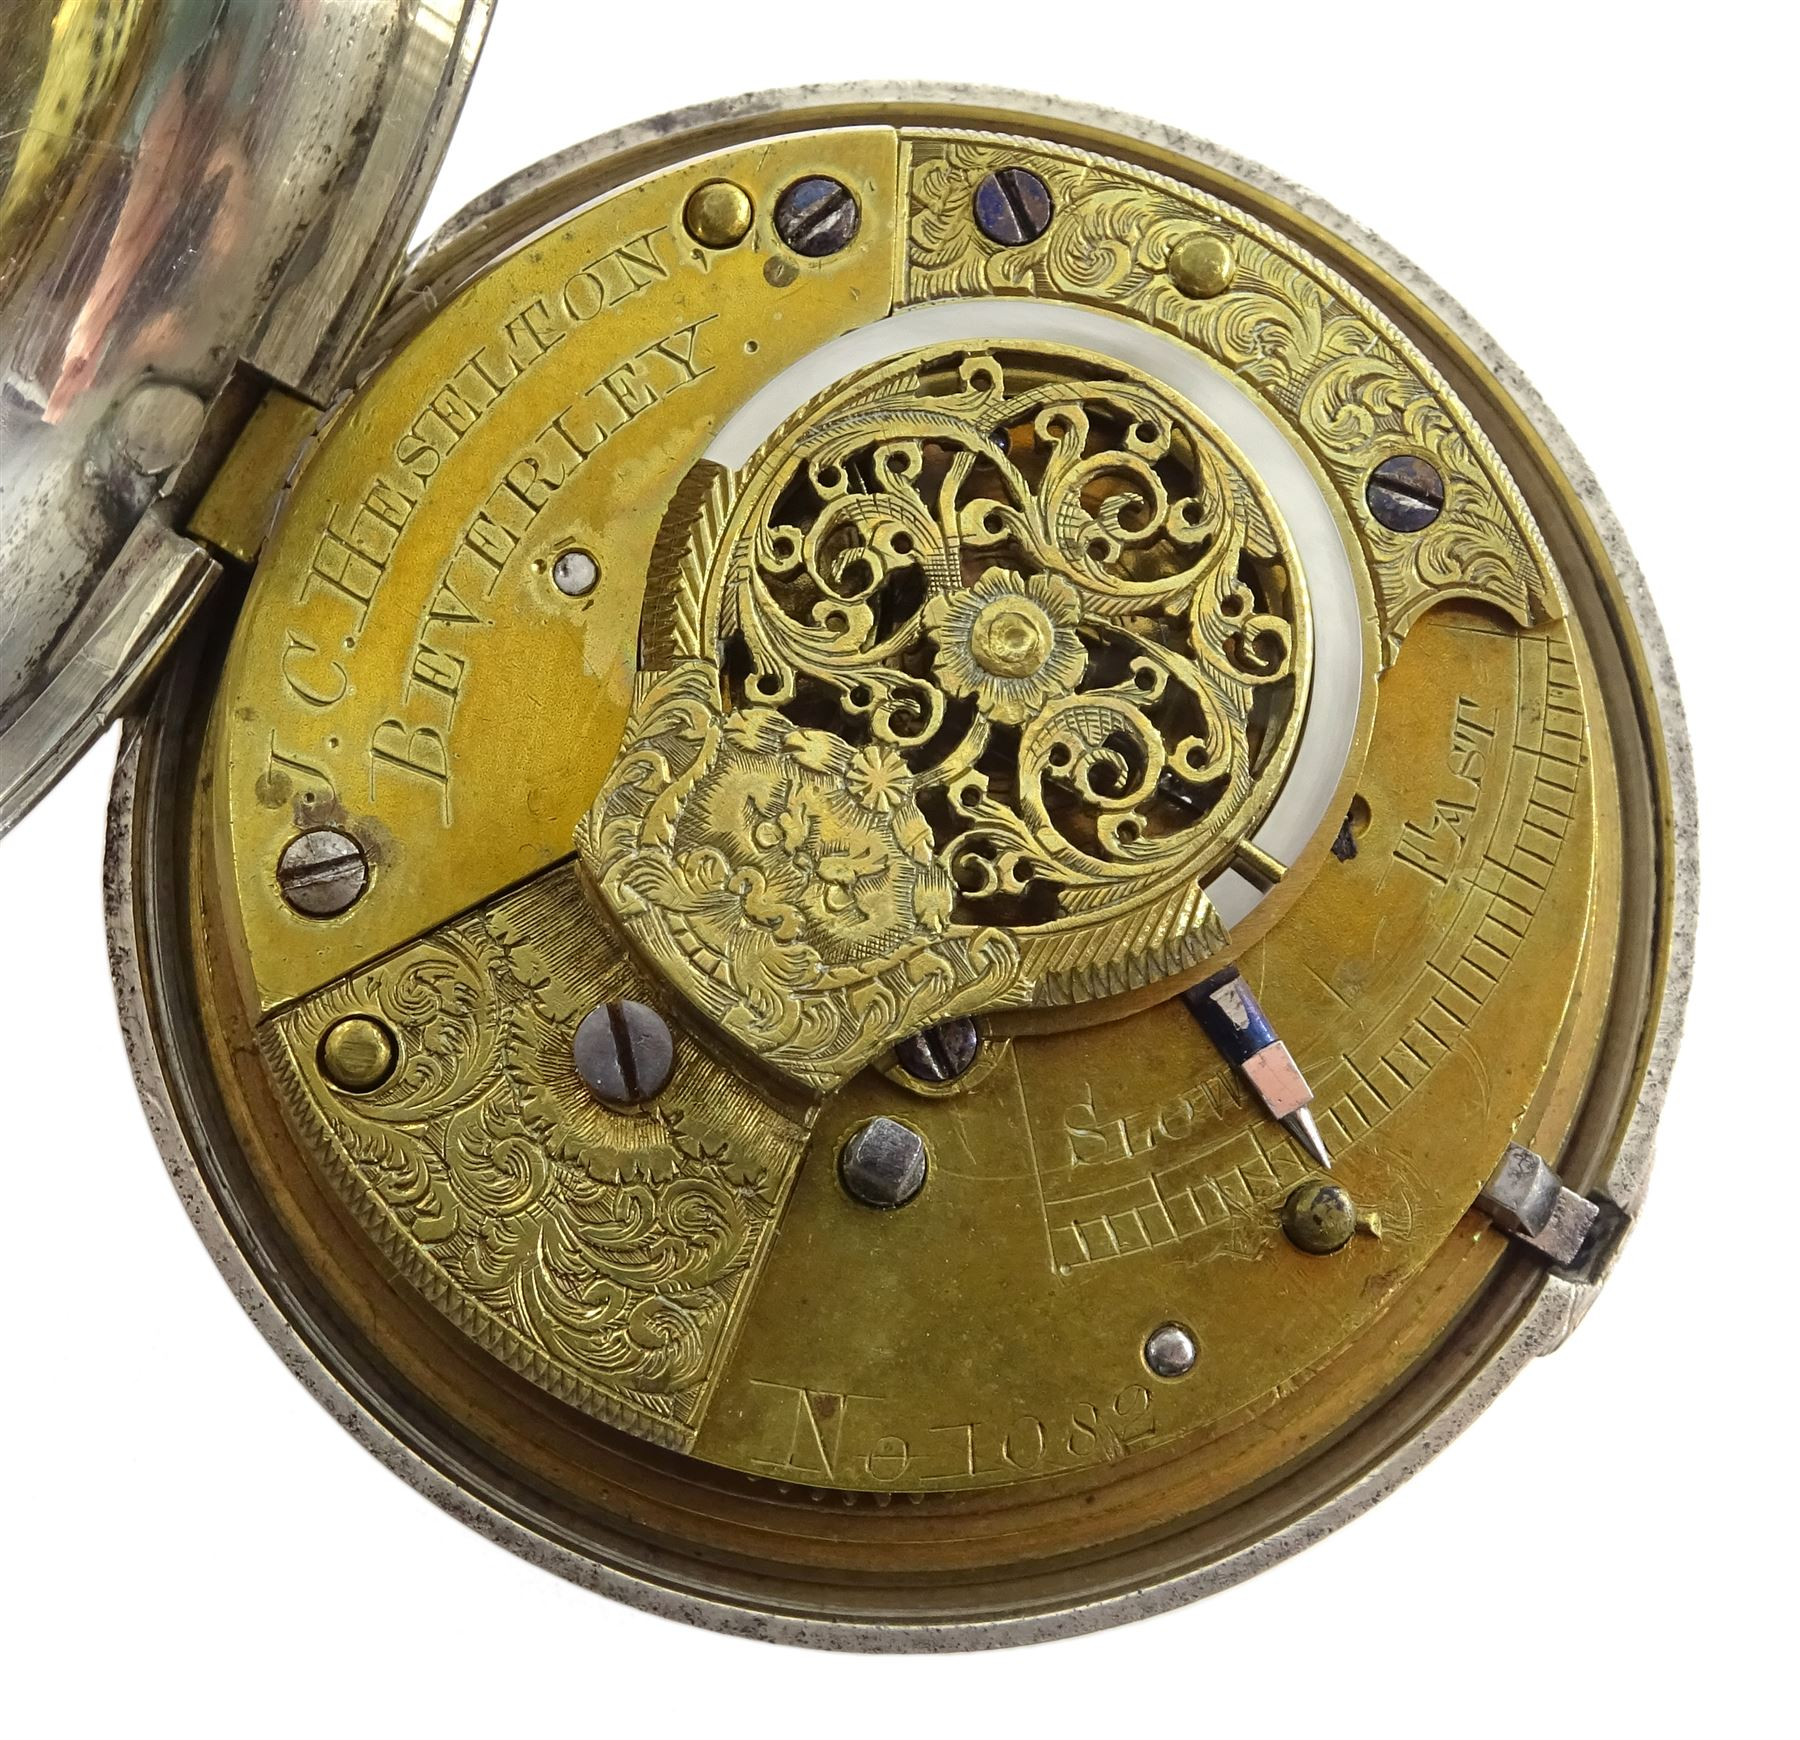 William IV silver pair cased verge fusee pocket watch by J C Heselton - Image 4 of 8